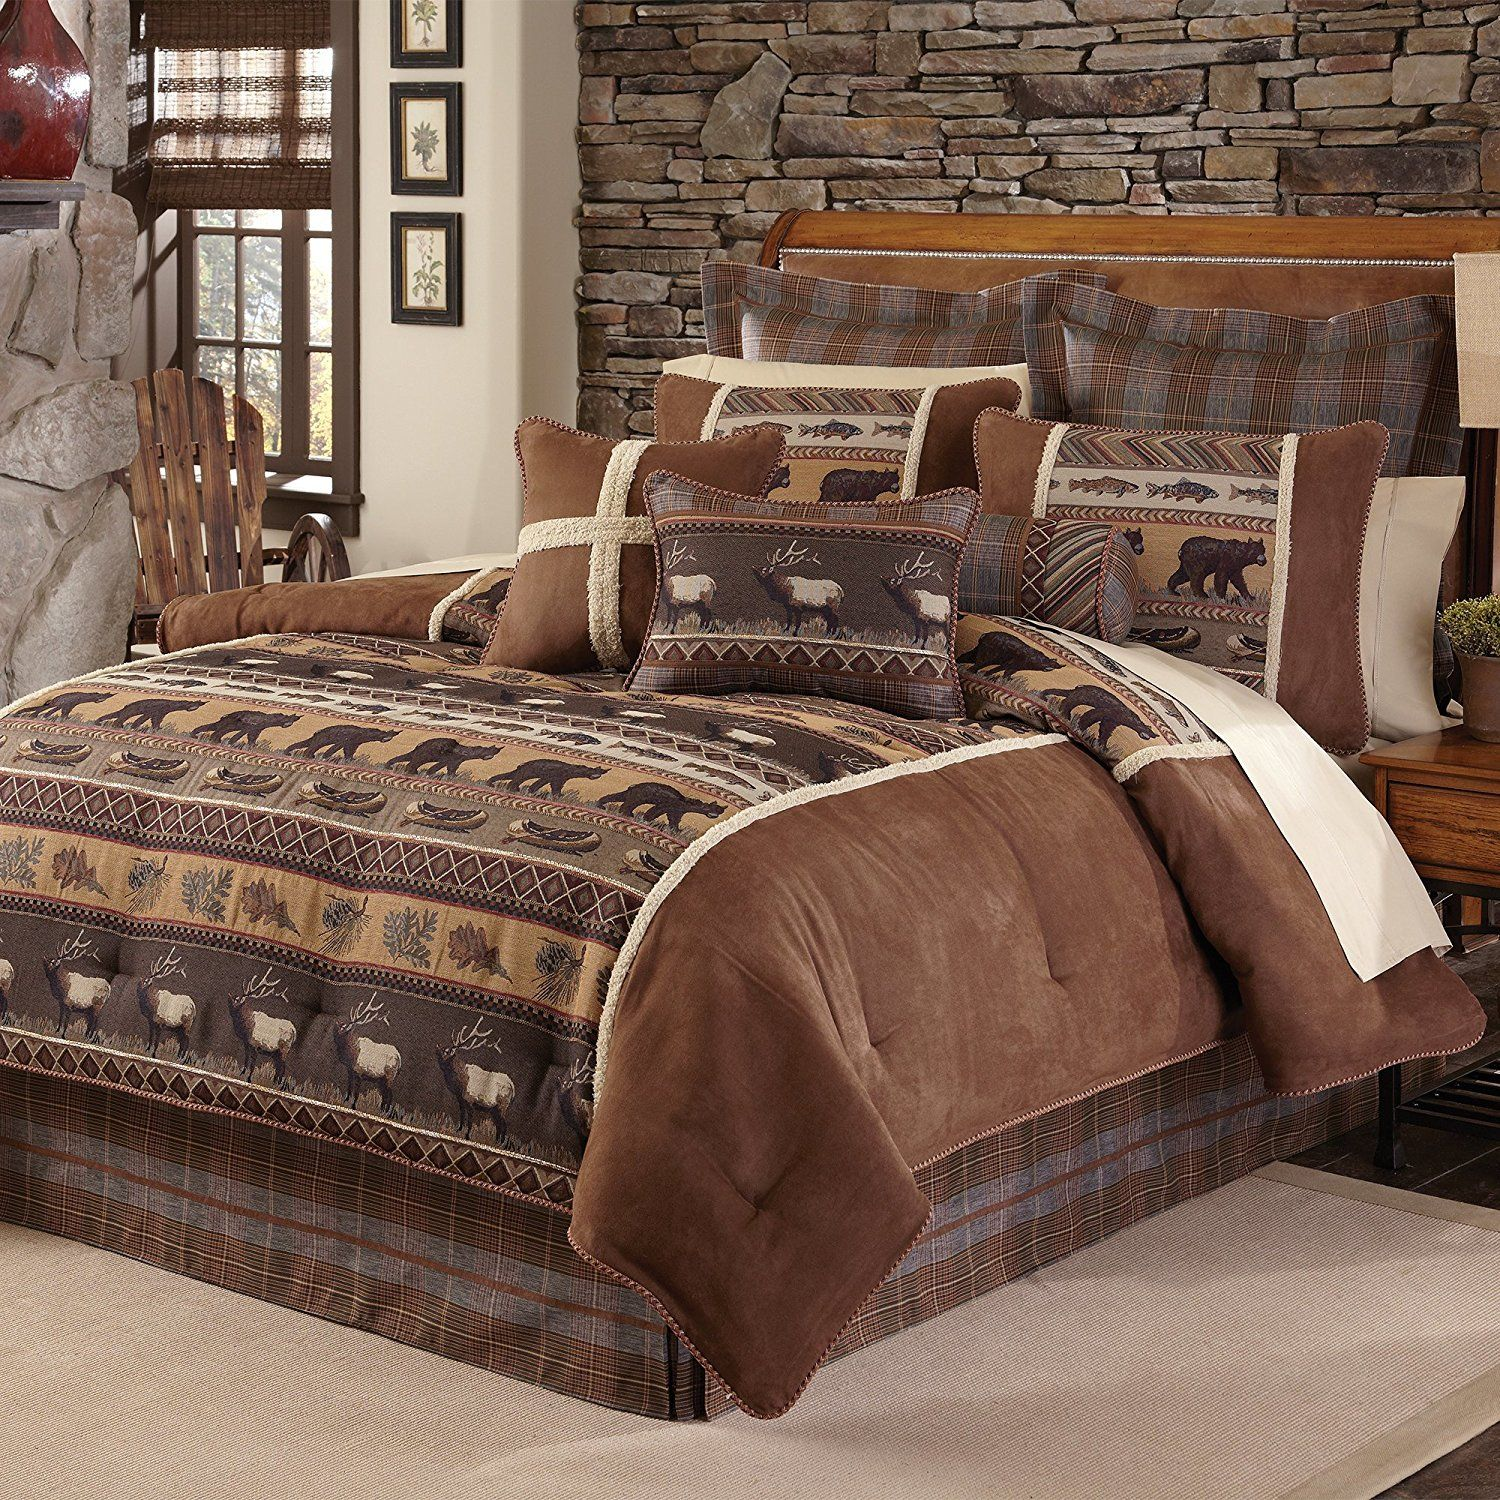 4 Piece Brown Cabin Themed Comforter King Cal King Set Lodge